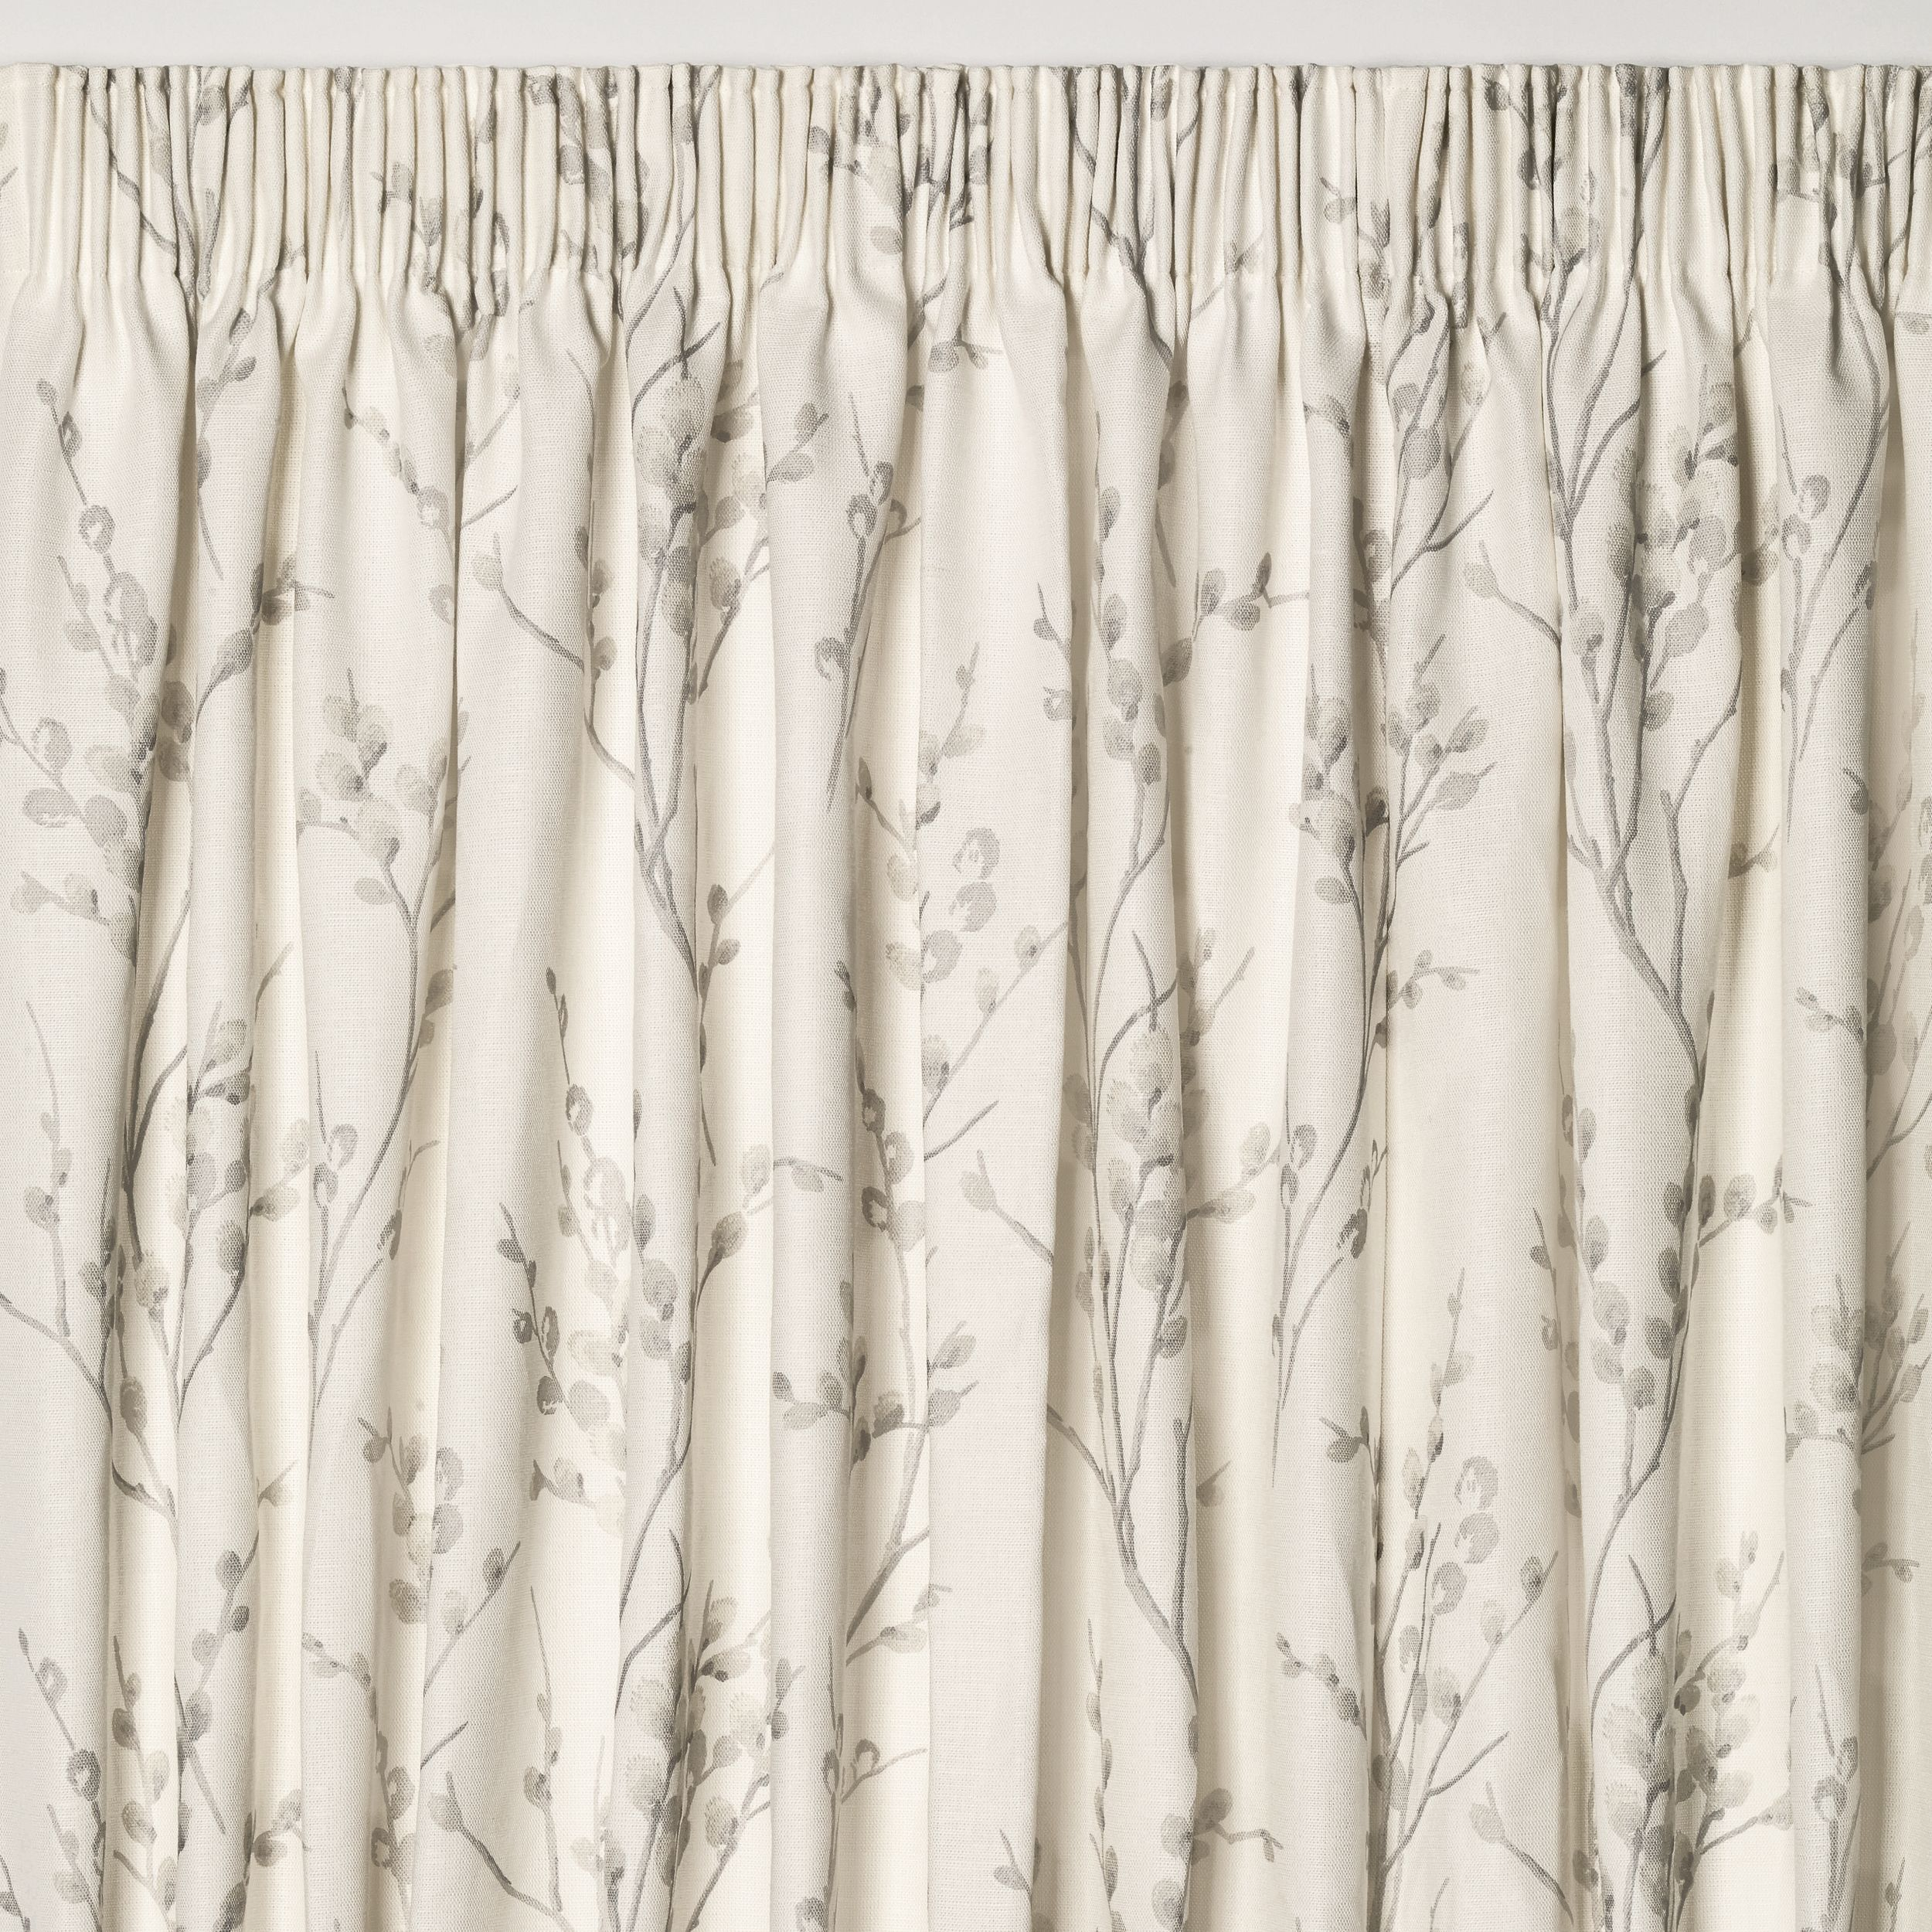 Pussy Willow f White Dove Grey Floral Pencil Pleat Ready Made